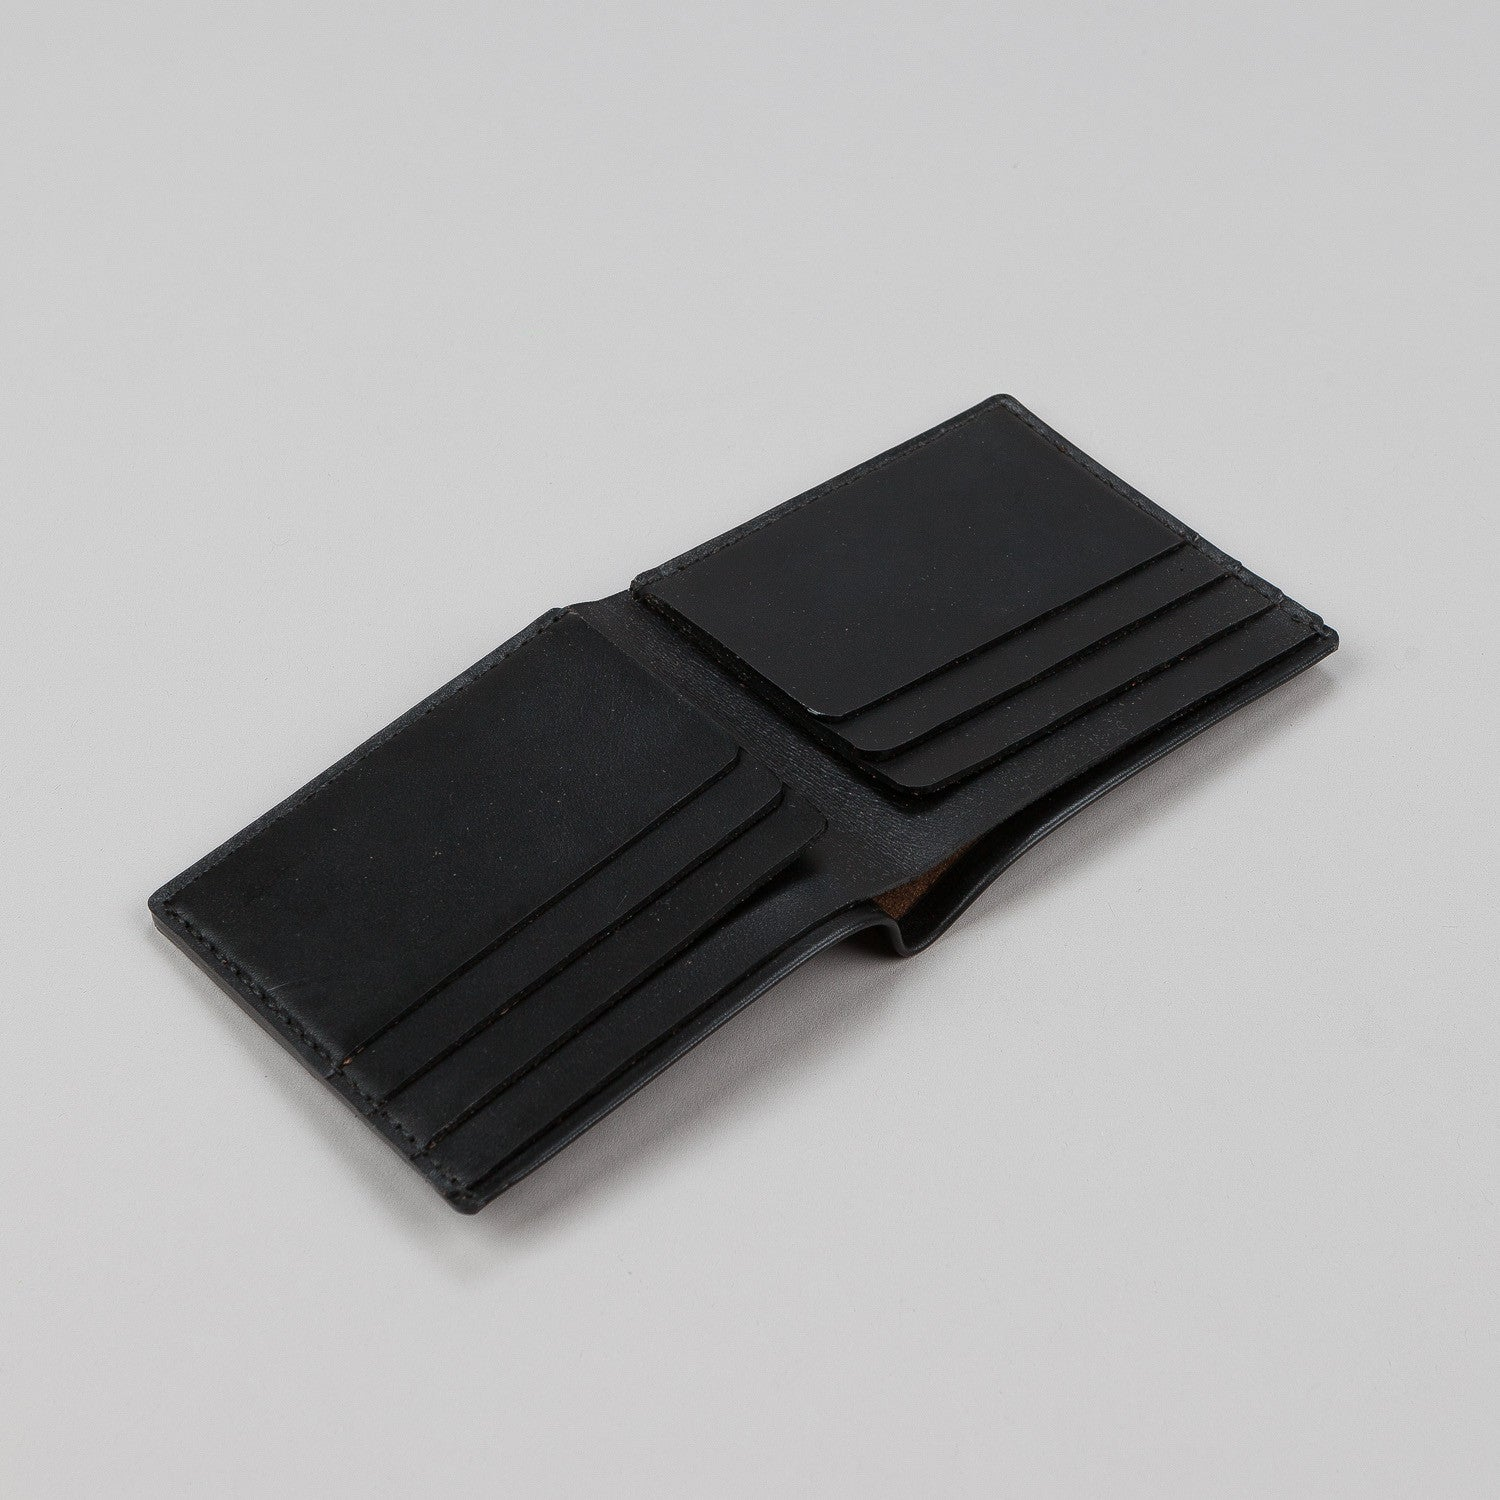 Makr Open Billfold Leather Wallet - Black